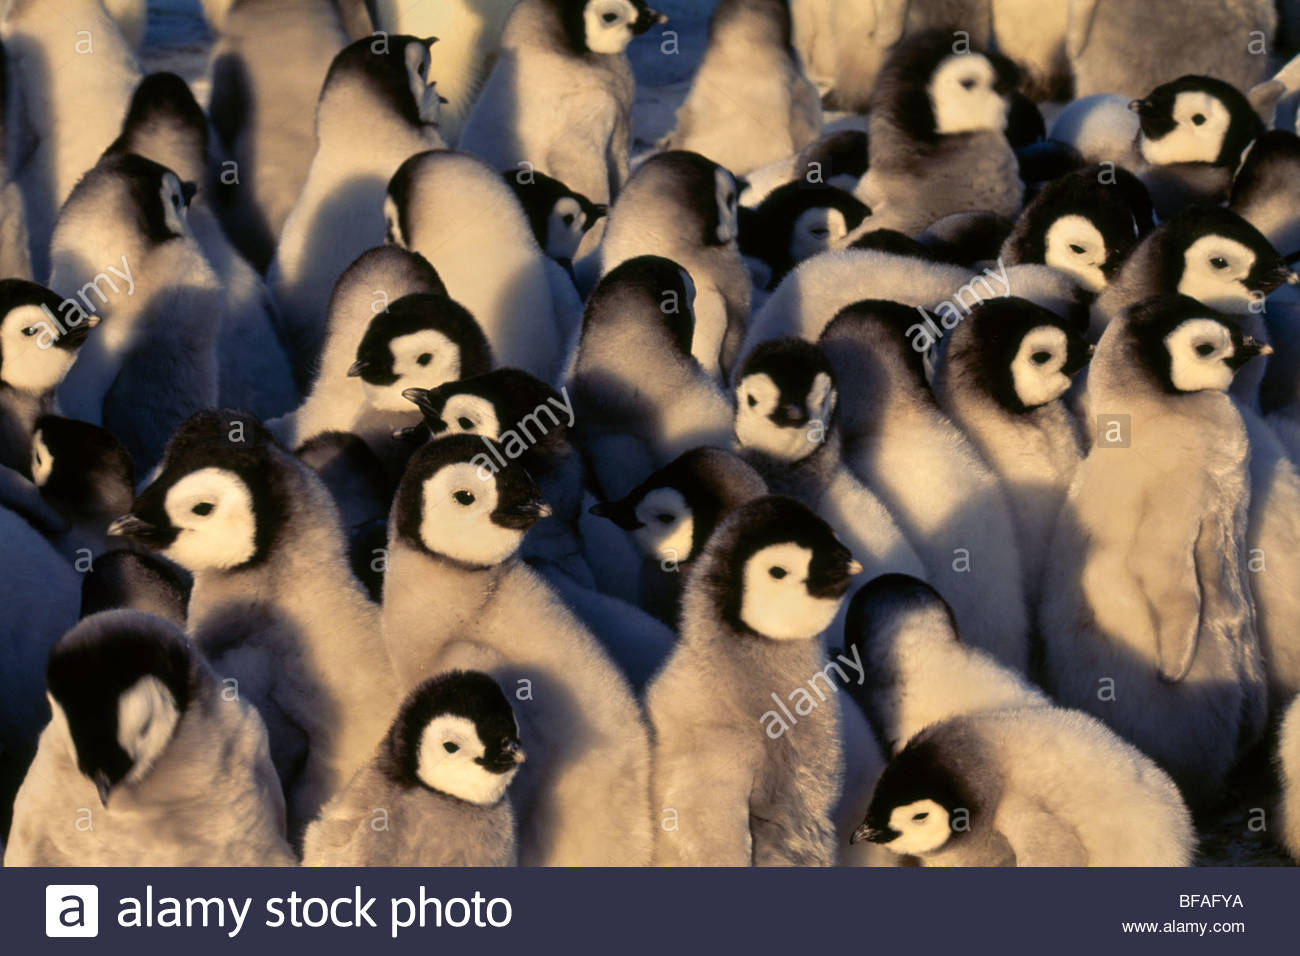 Manchot Empereur poussins piaillent, Aptenodytes forsteri, Antarctique Photo Stock